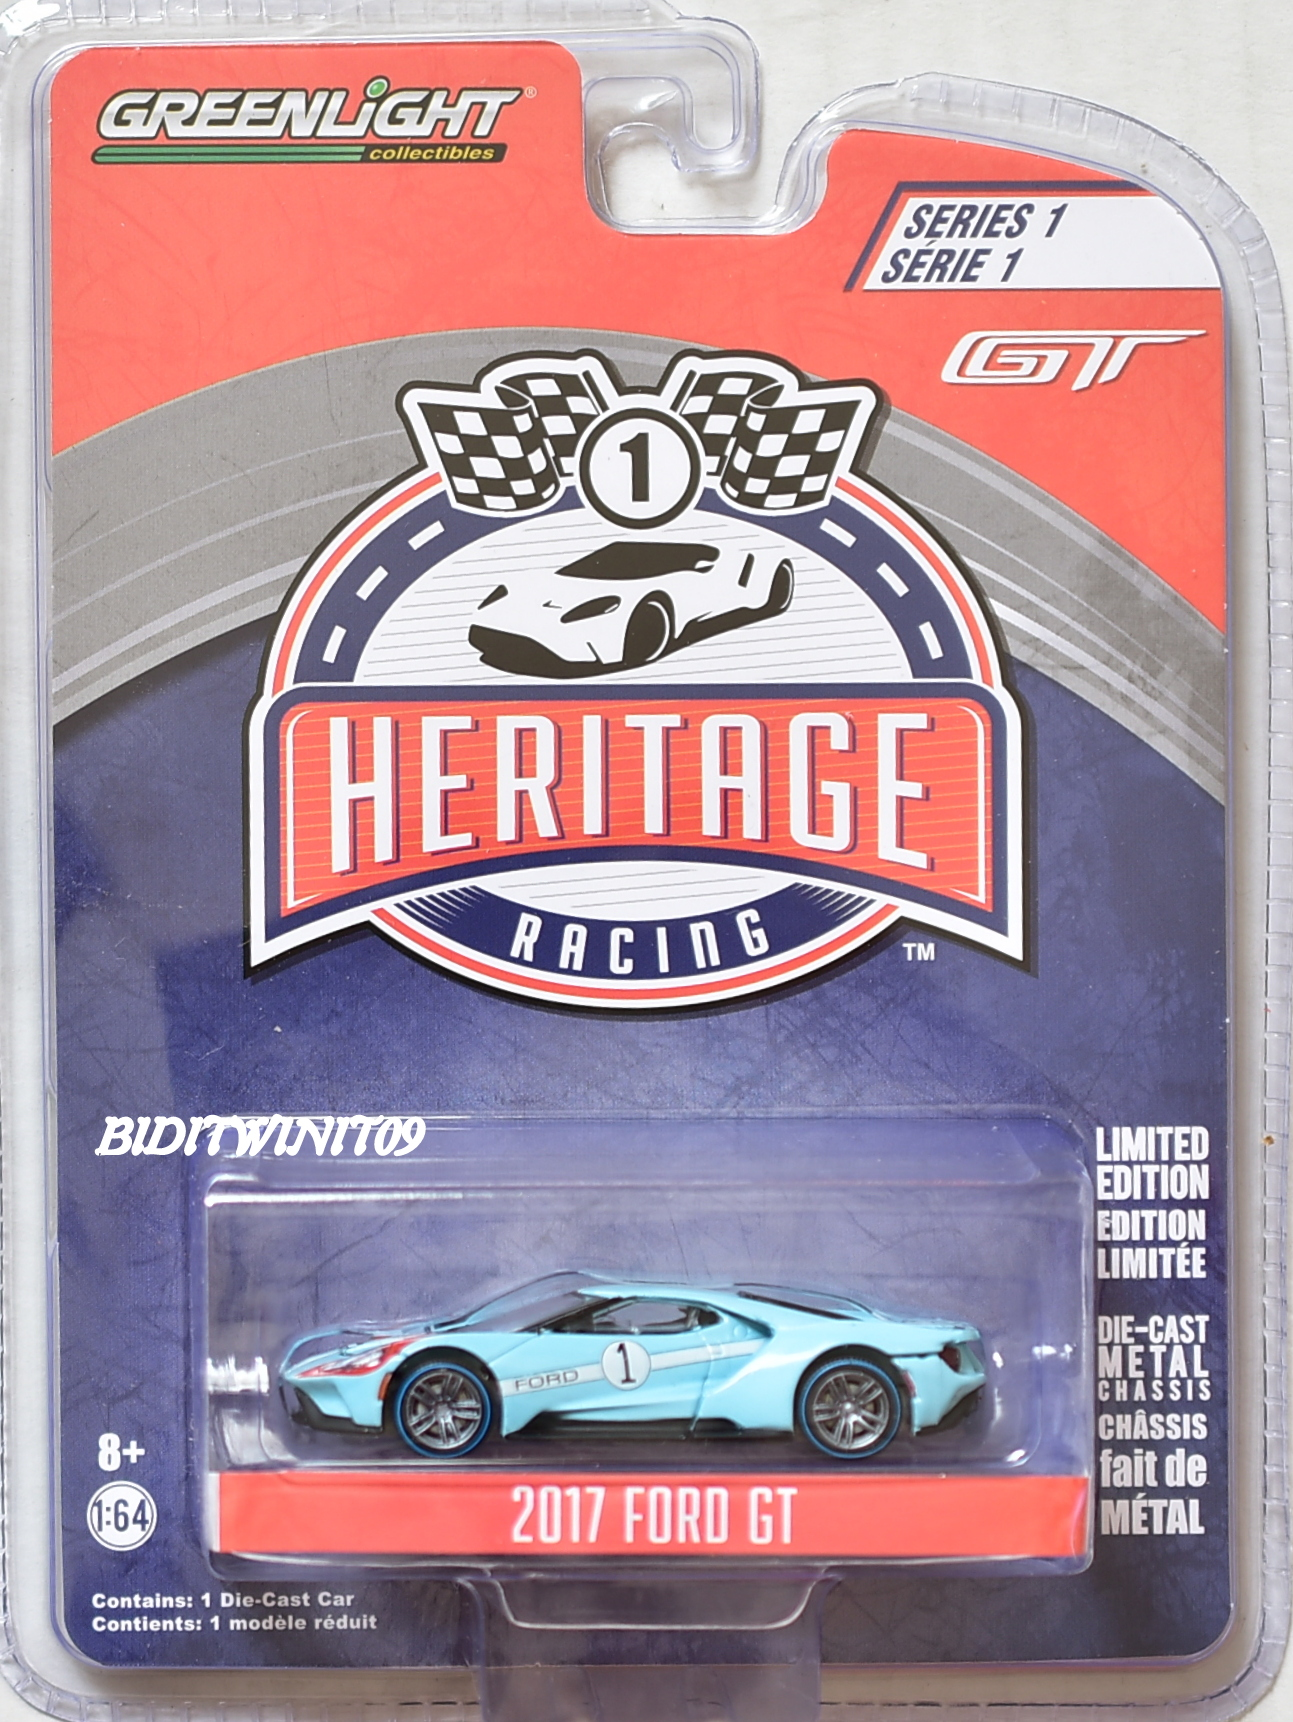 GREENLIGHT HERITAGE RACING SERIES 1 2017 FORD GT LIGHT BLUE